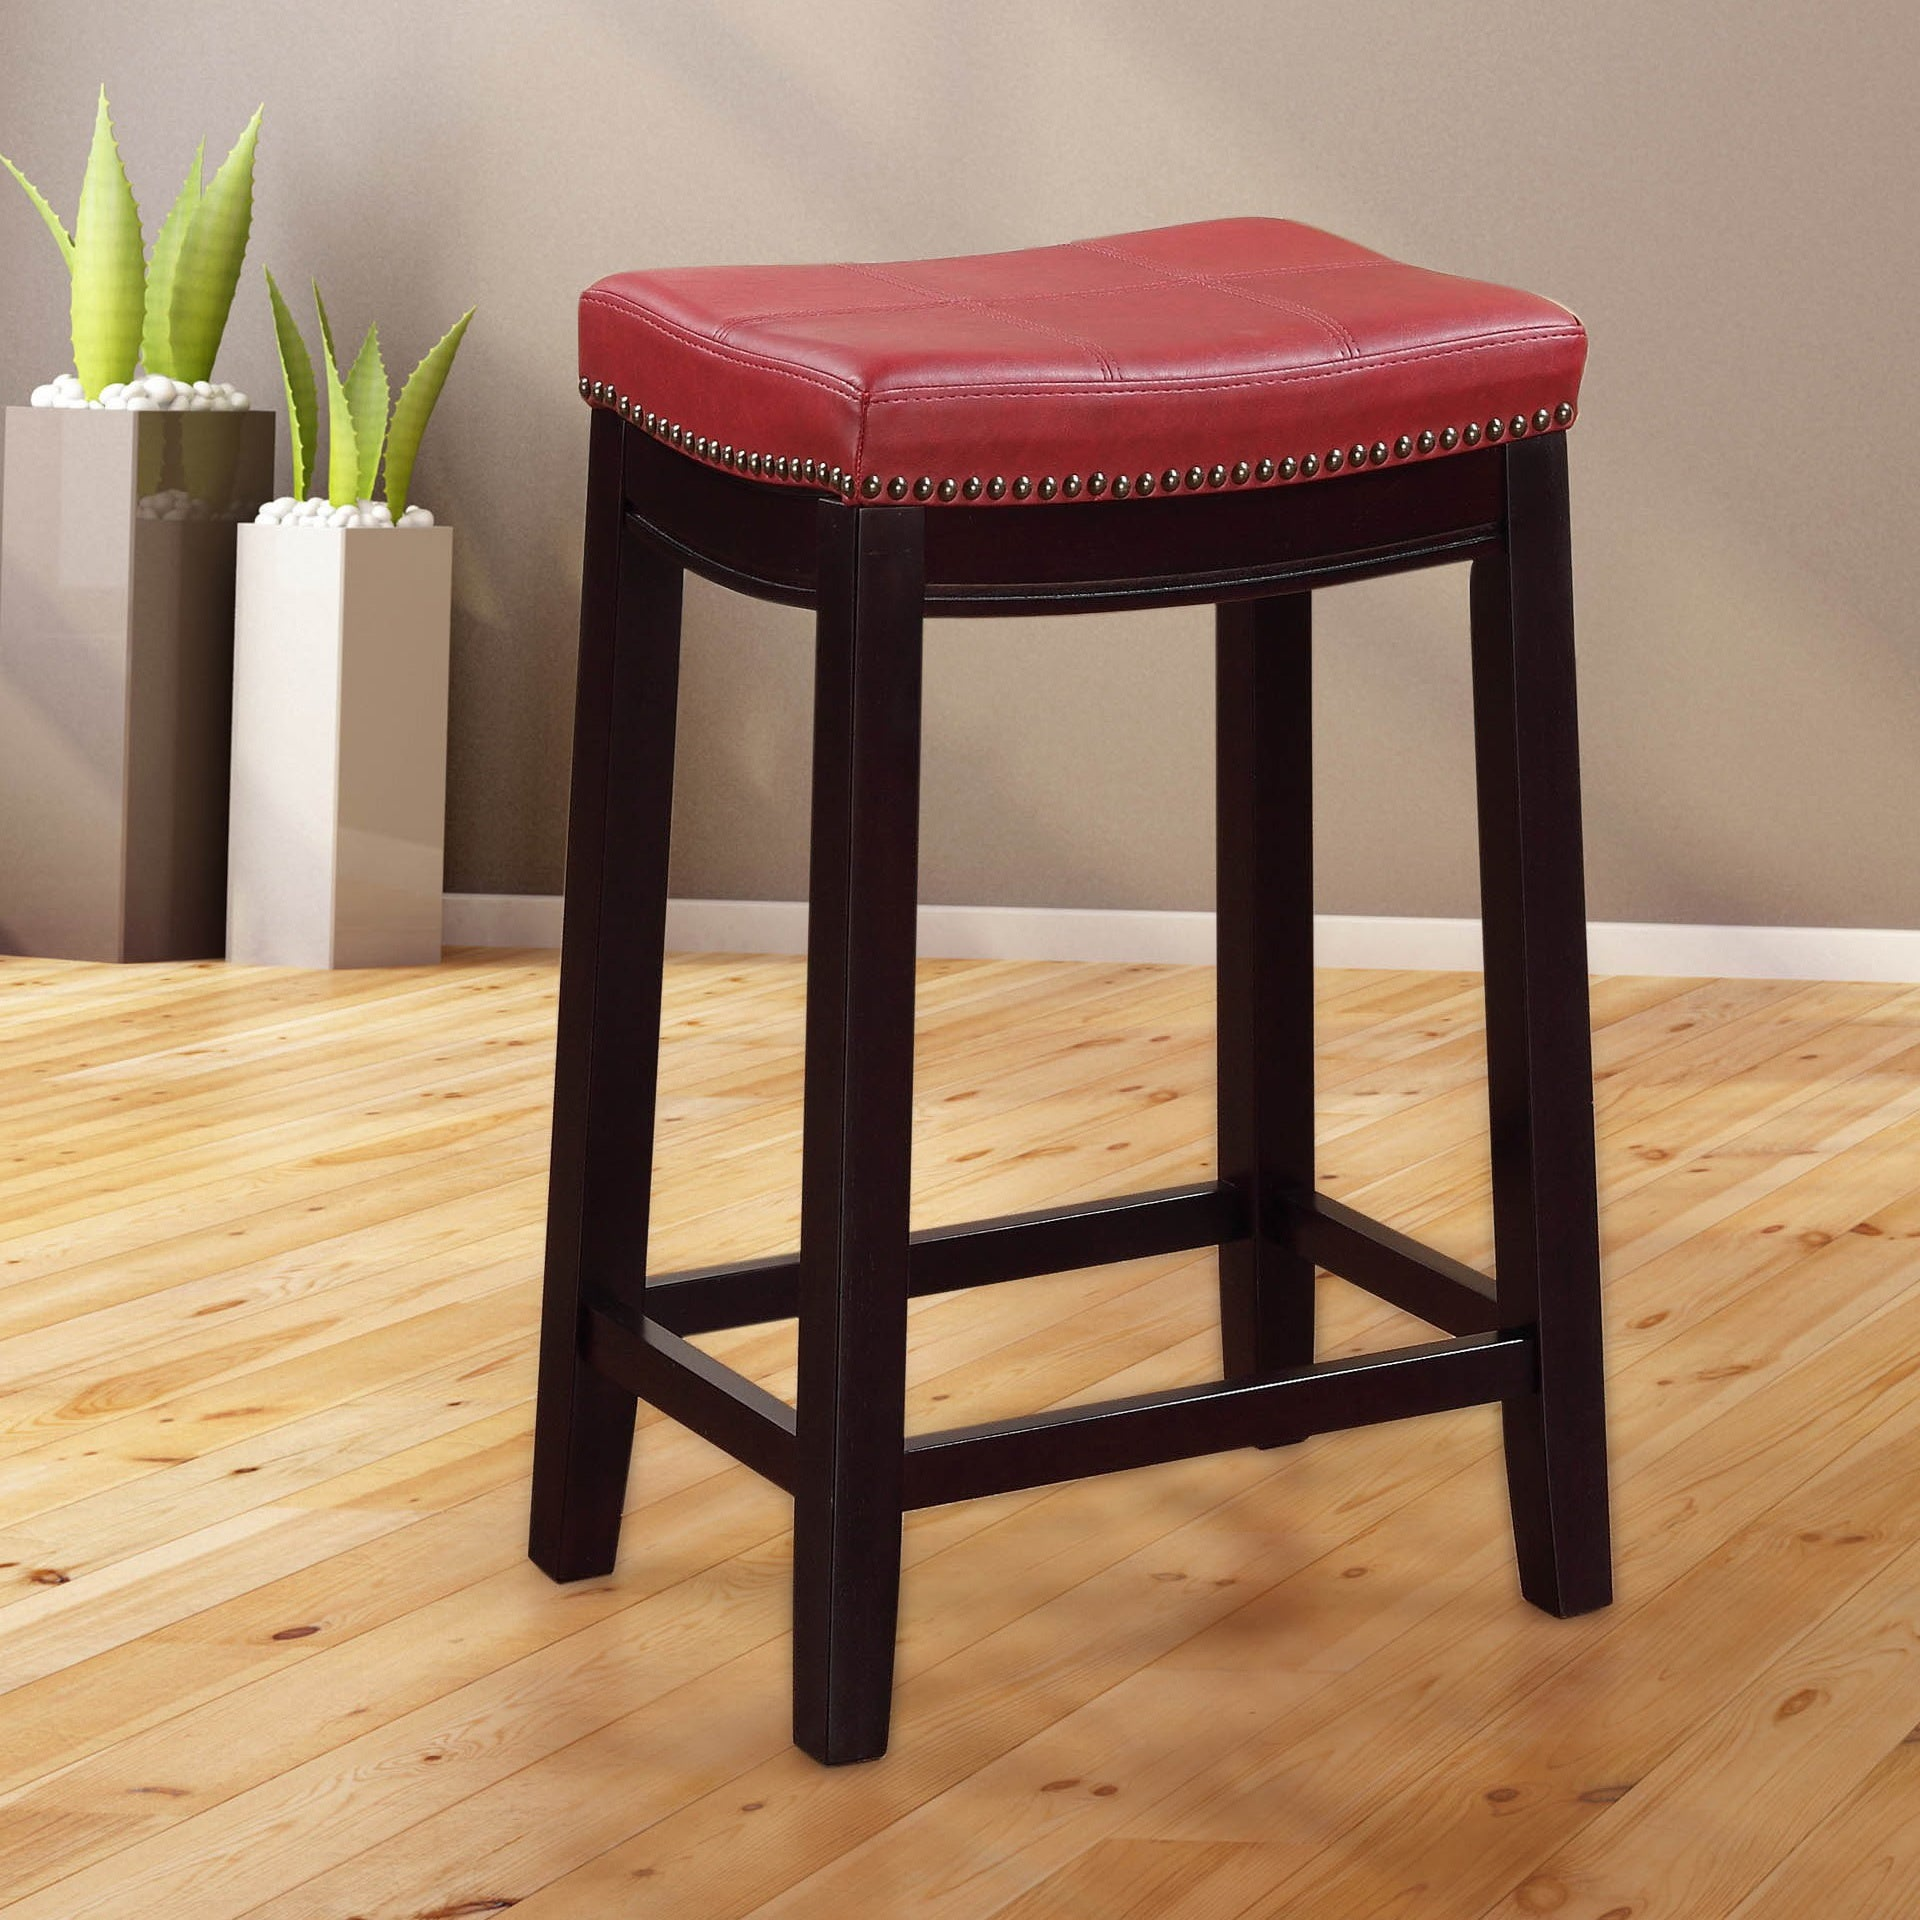 Swell Linon Manhattanesque Backless Counter Stool Red Vinyl Seat Machost Co Dining Chair Design Ideas Machostcouk